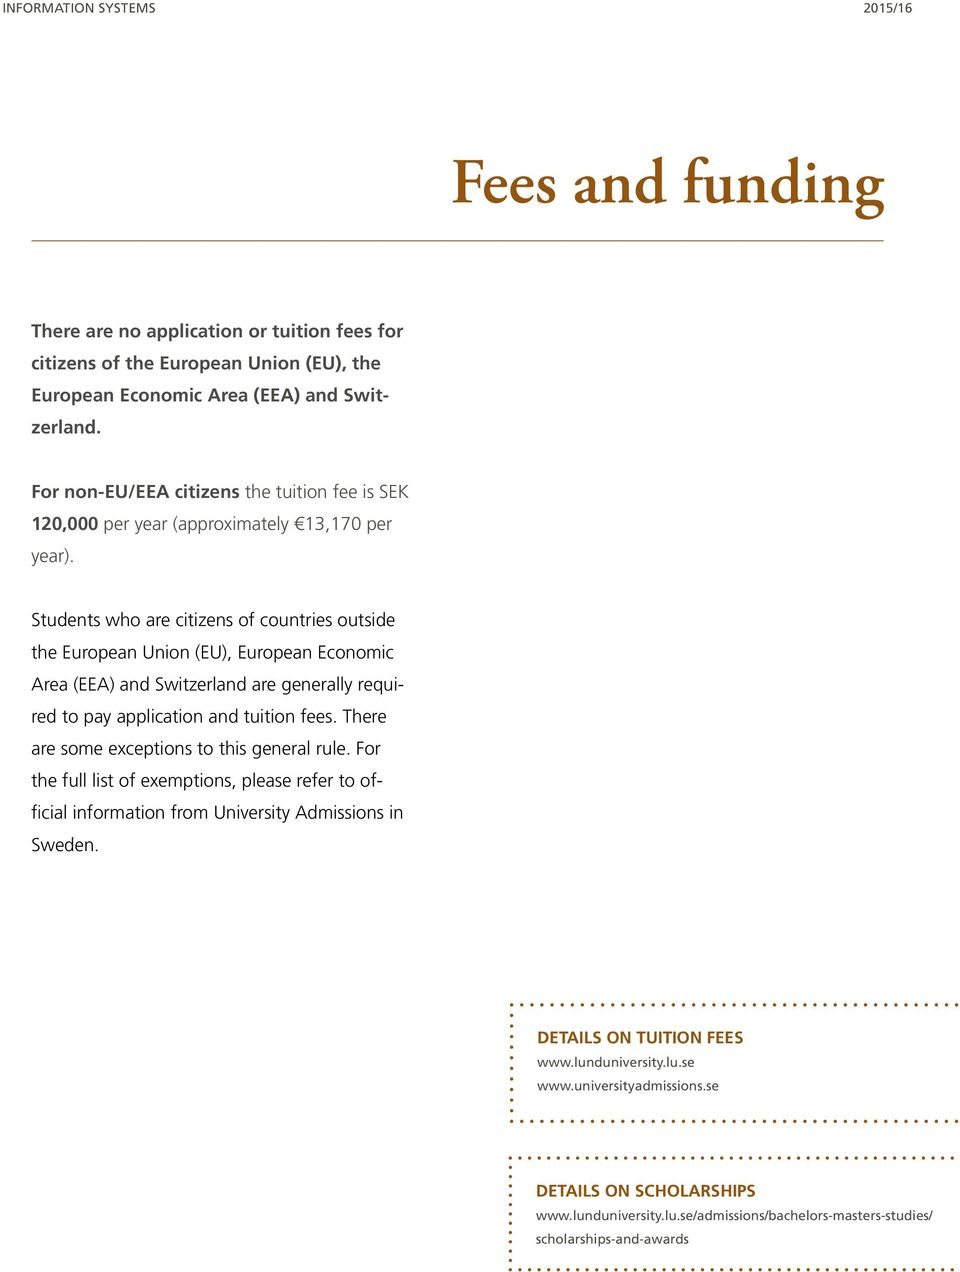 Students who are citizens of countries outside the European Union (EU), European Economic Area (EEA) and Switzerland are generally required to pay application and tuition fees.